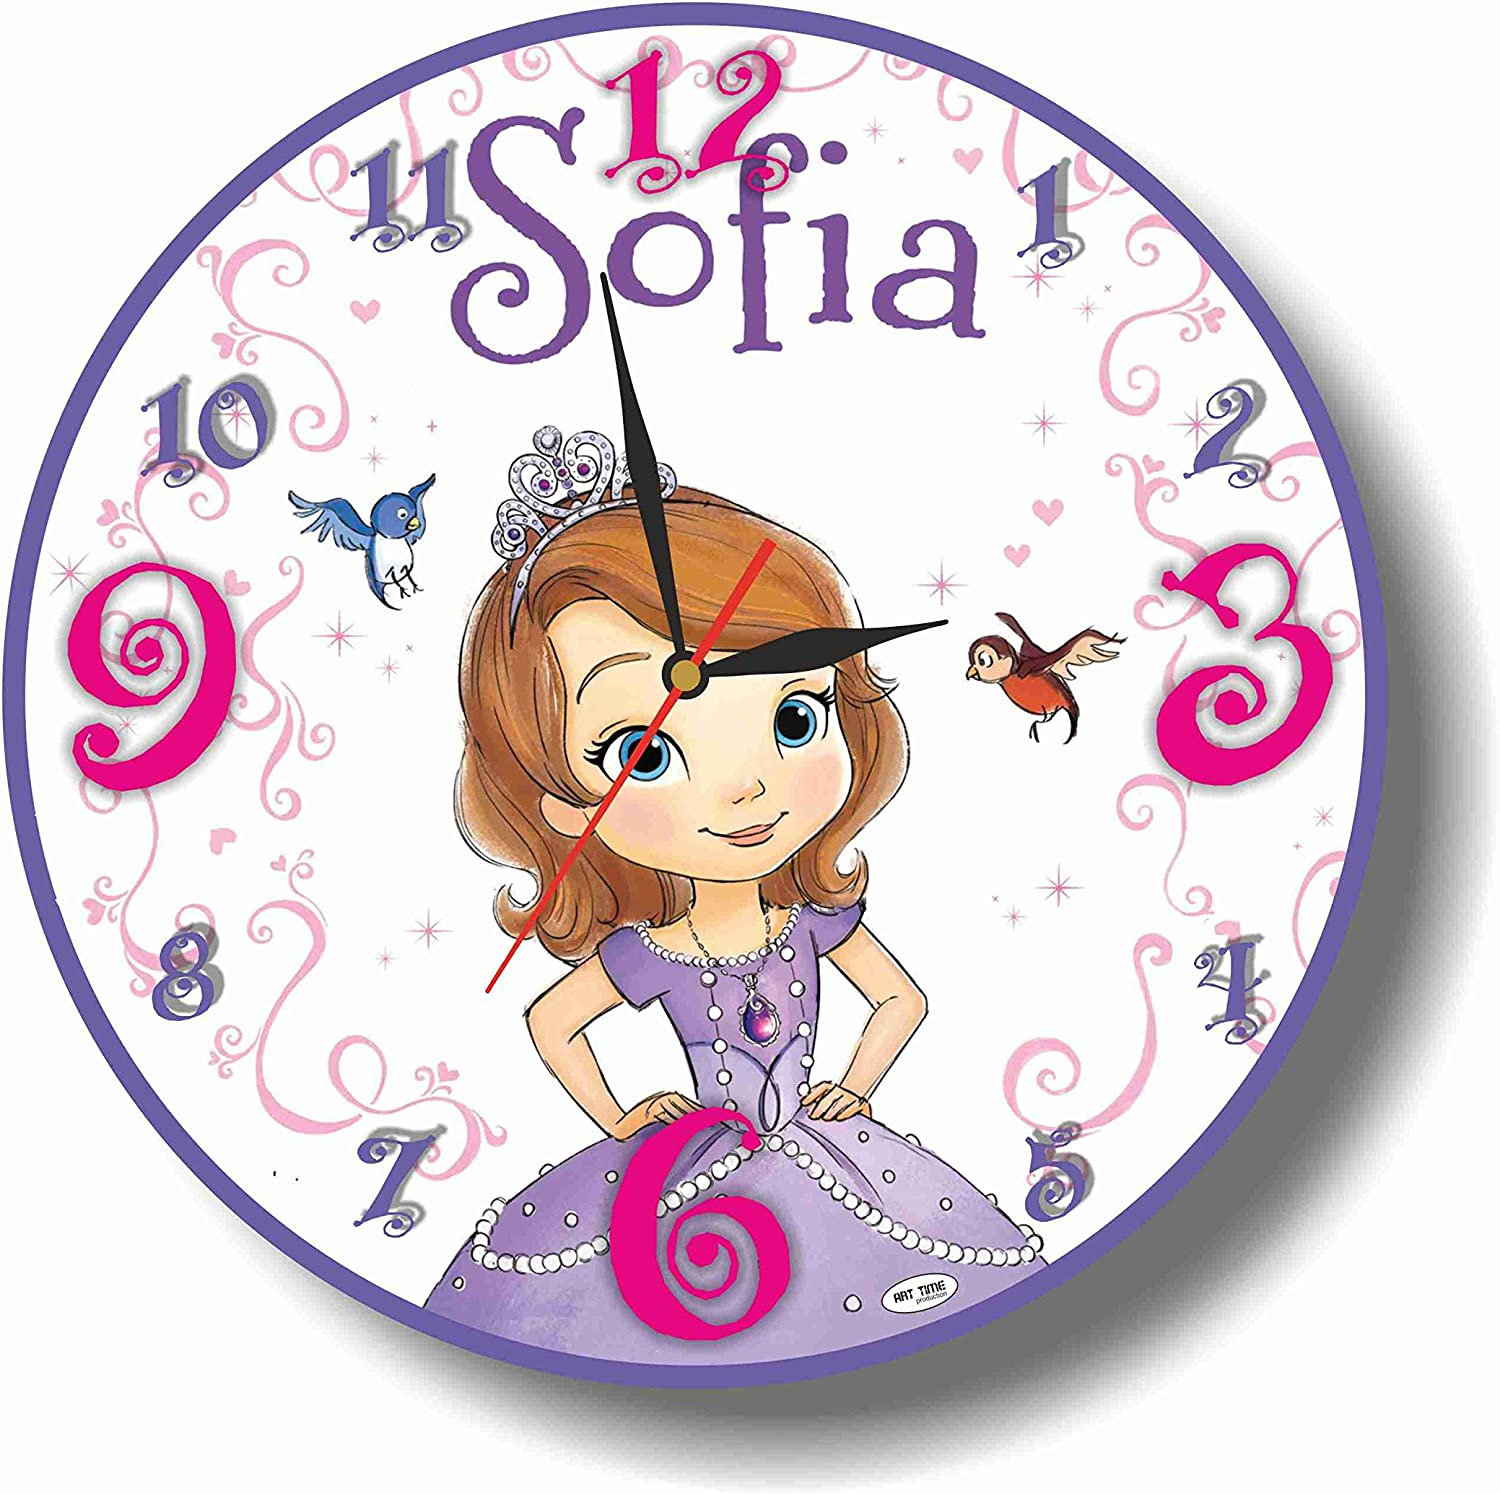 Art time production Sofia The First 11.8'' Handmade Wall Clock - Get Unique décor for Home or Office – Best Gift Ideas for Kids, Friends, Parents and Your Soul Mates